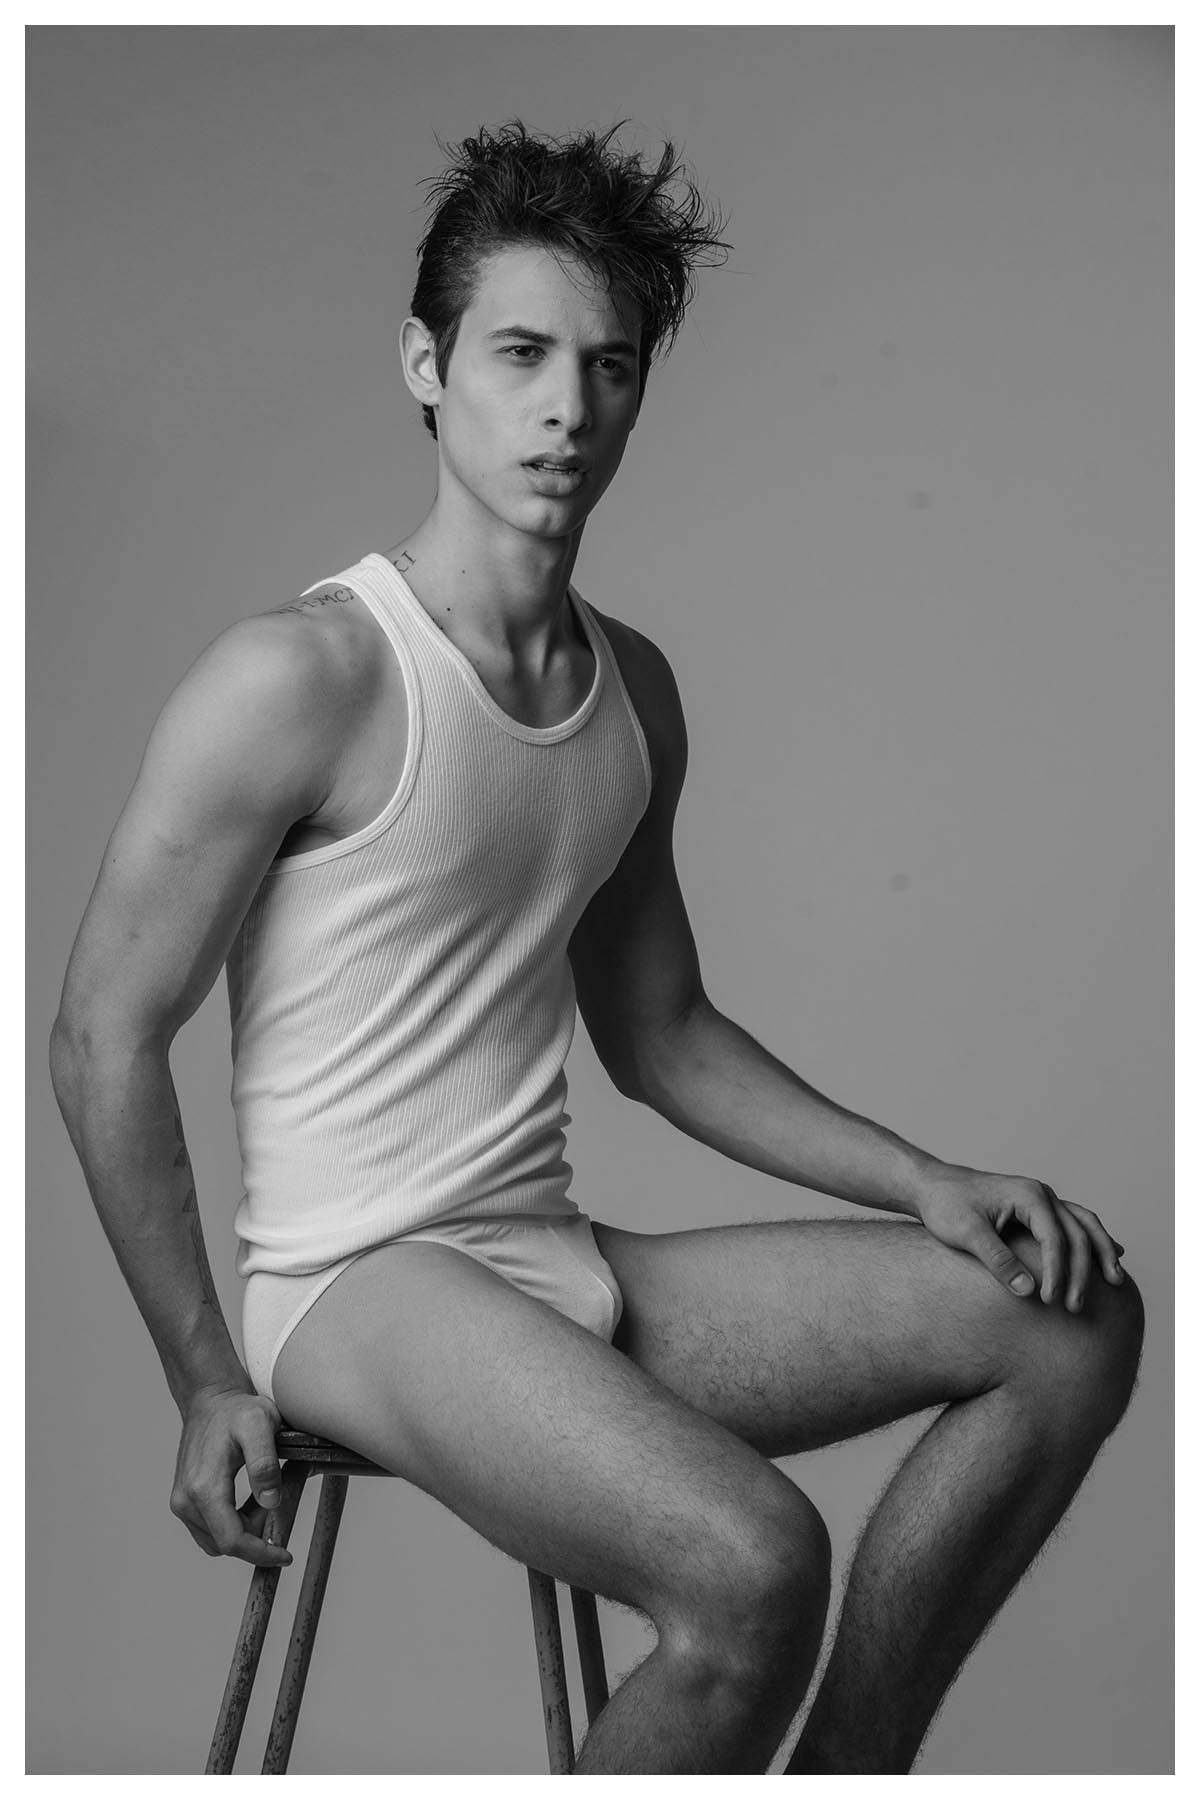 Isaac Paiva by Leandro Ramos for Brazilian Male Model